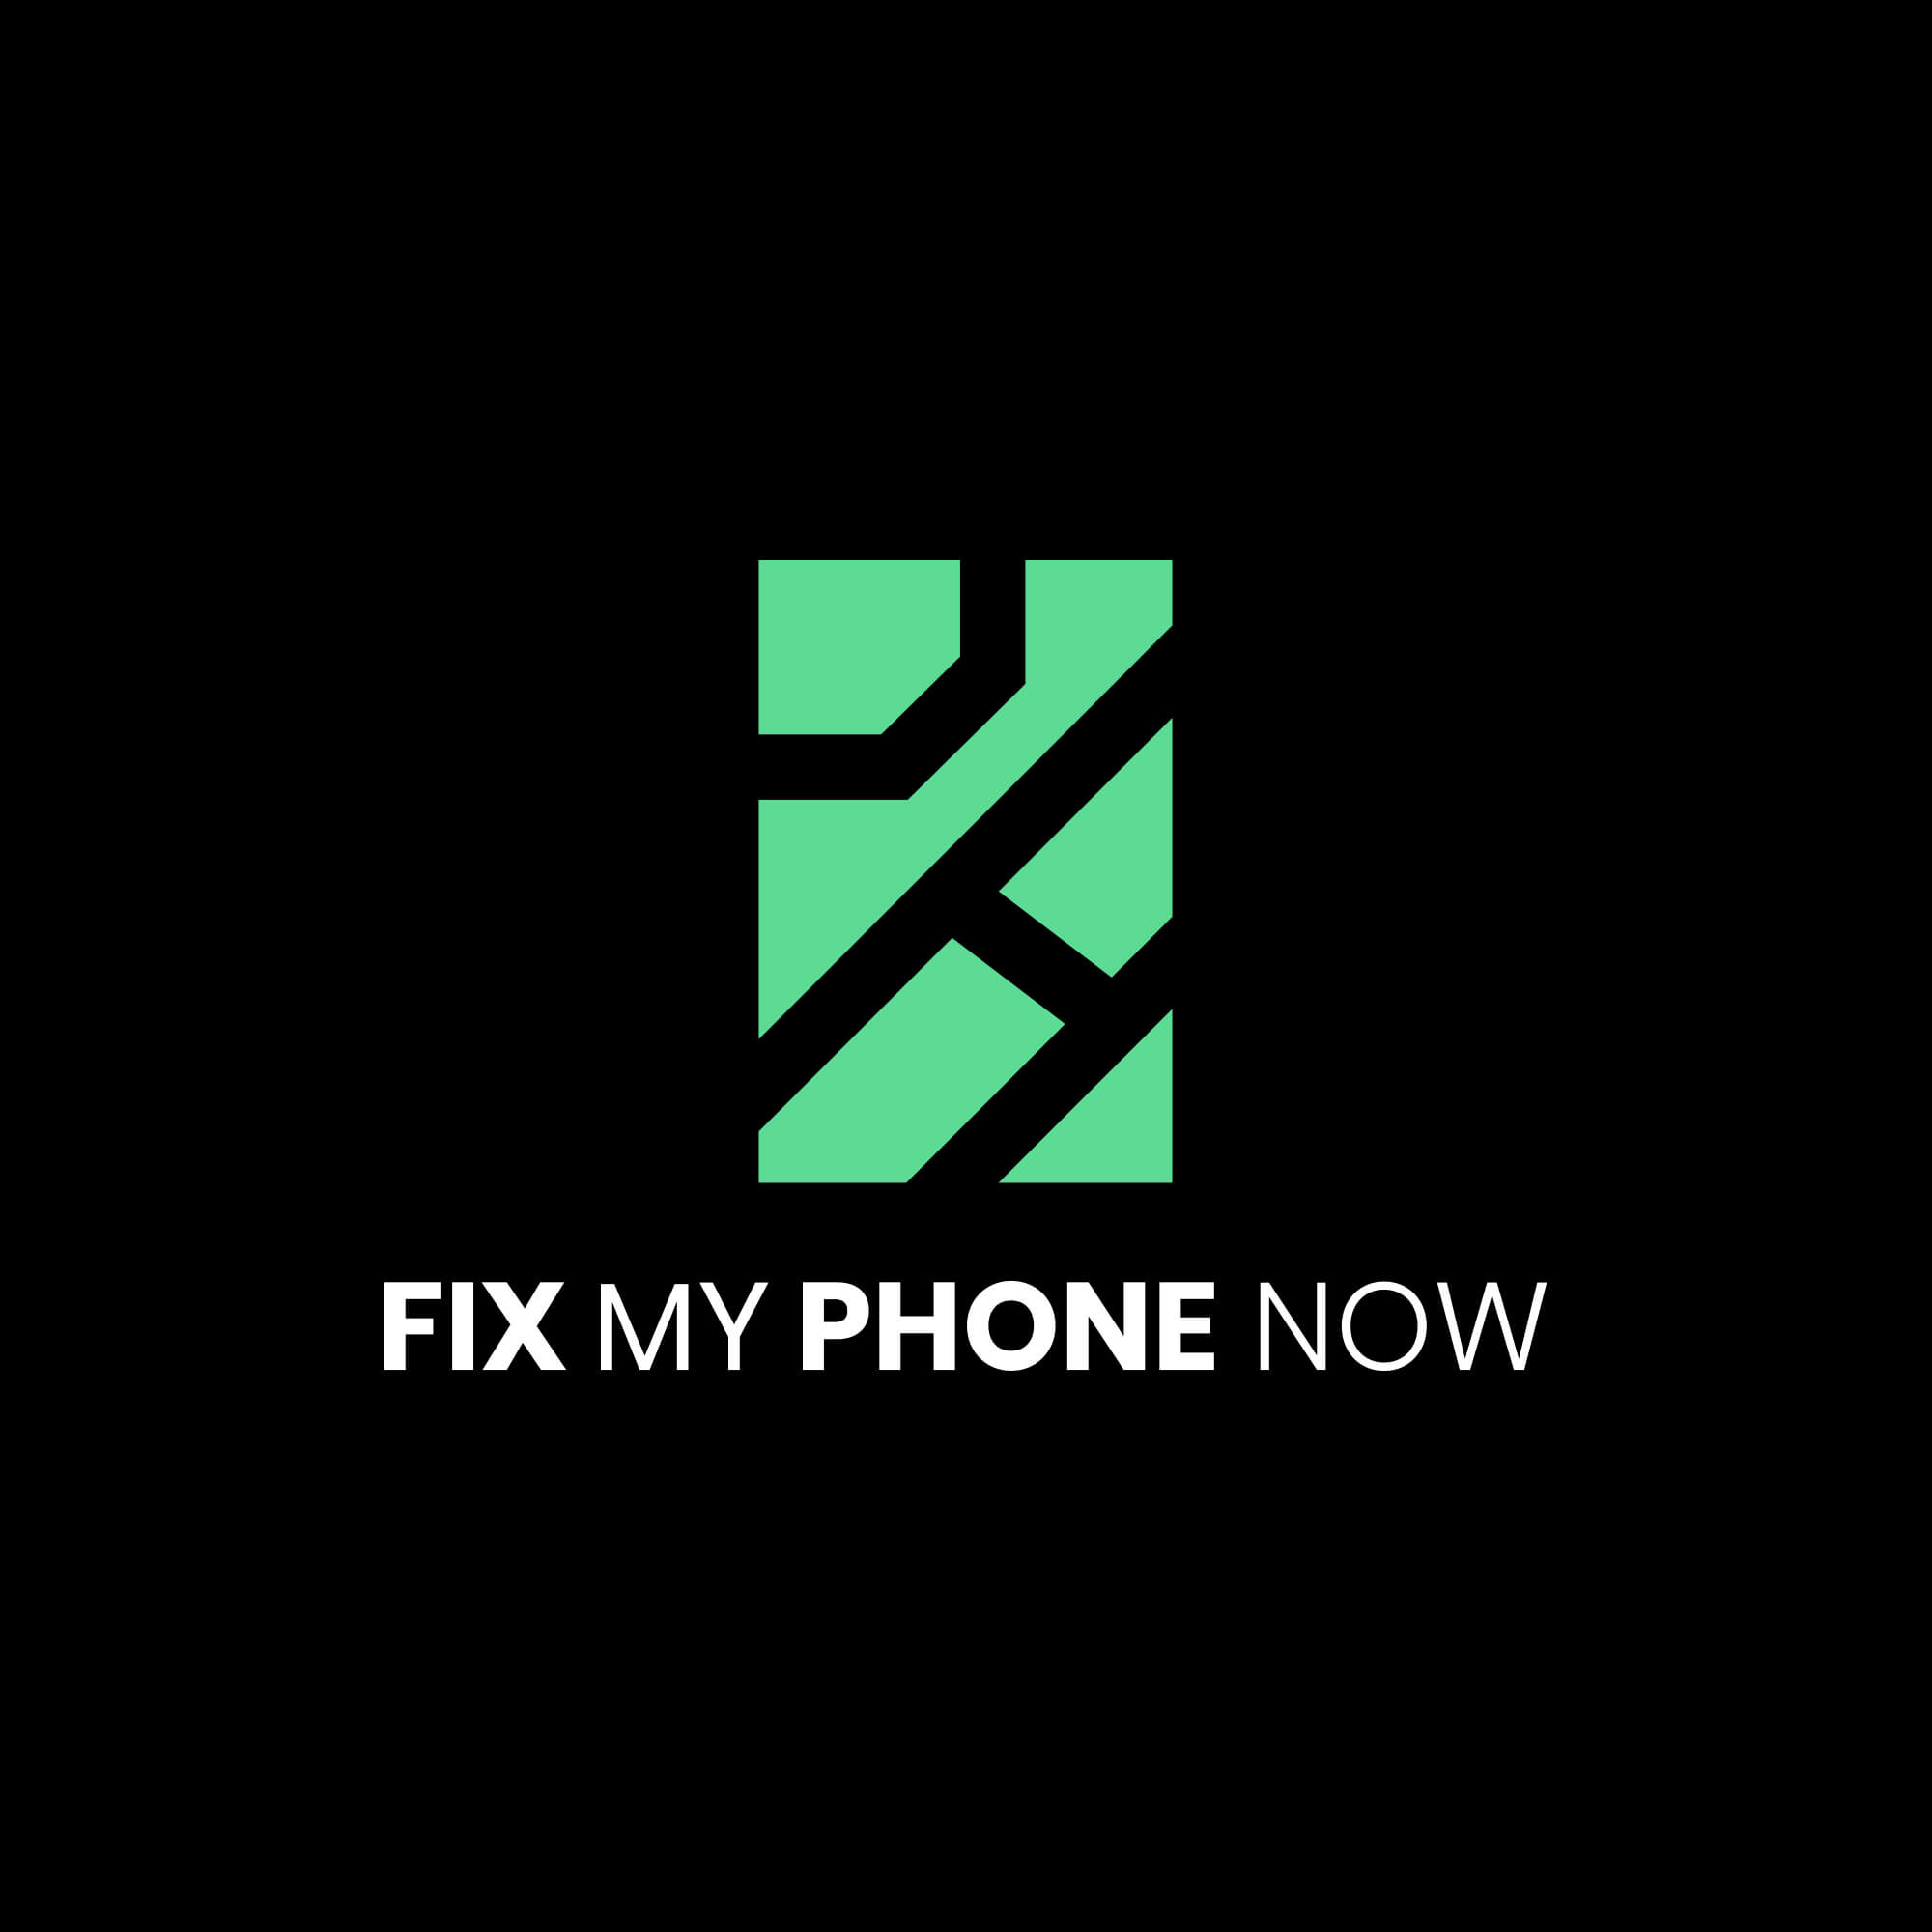 fix my phone now, phone repair shop melbourne, phone repair melbourne, phone repairs